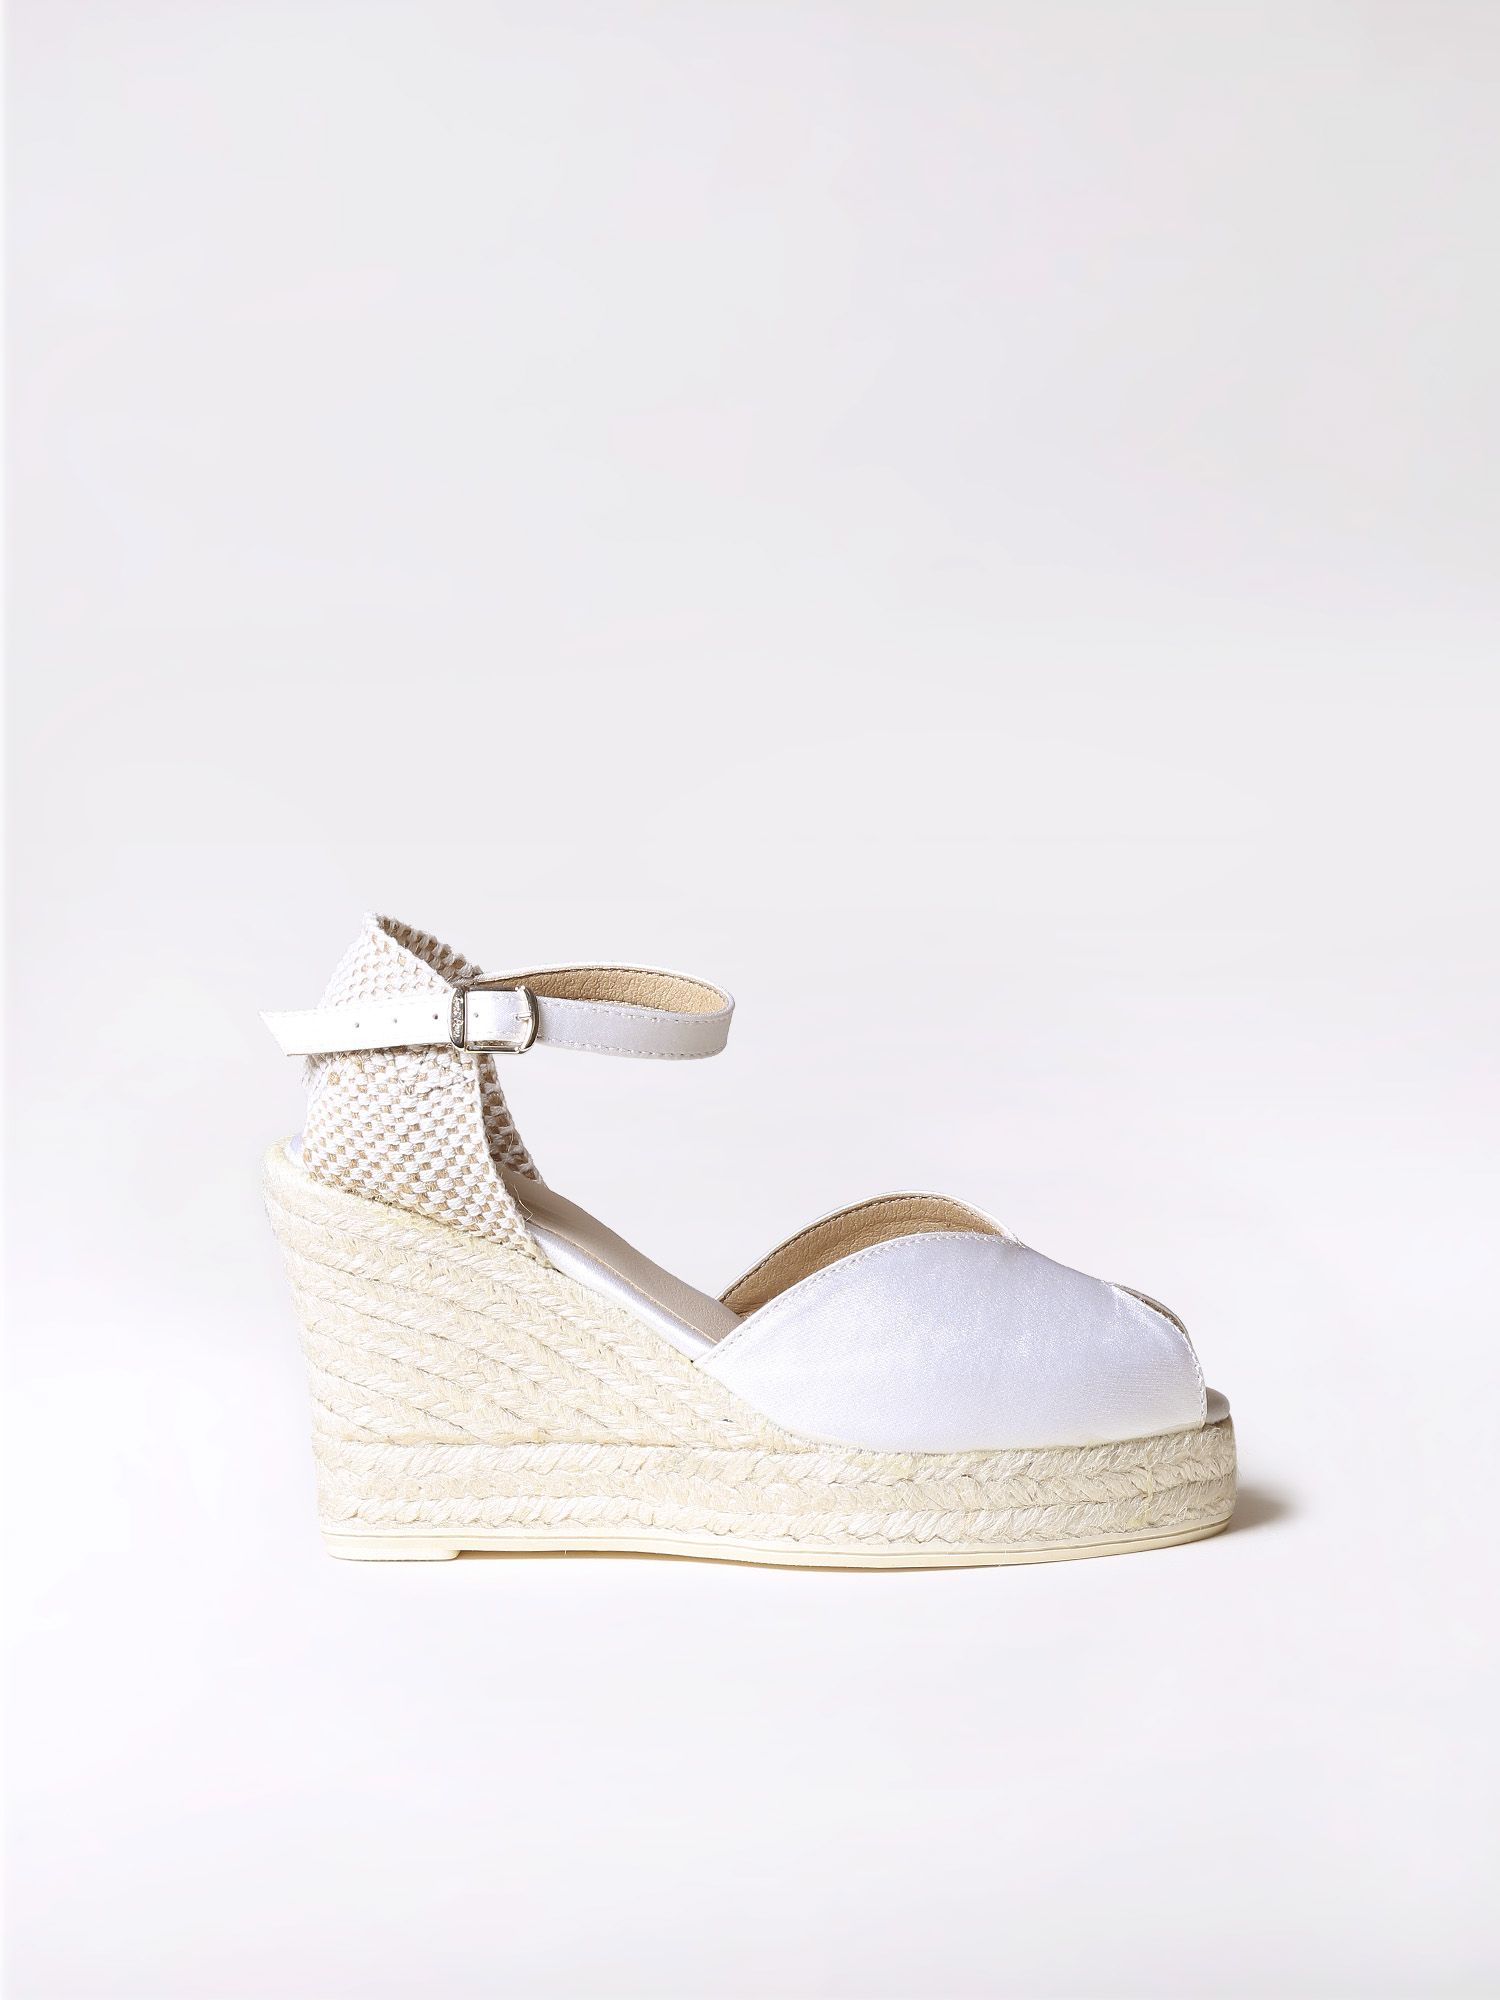 Bridal wedge - ARIADNE